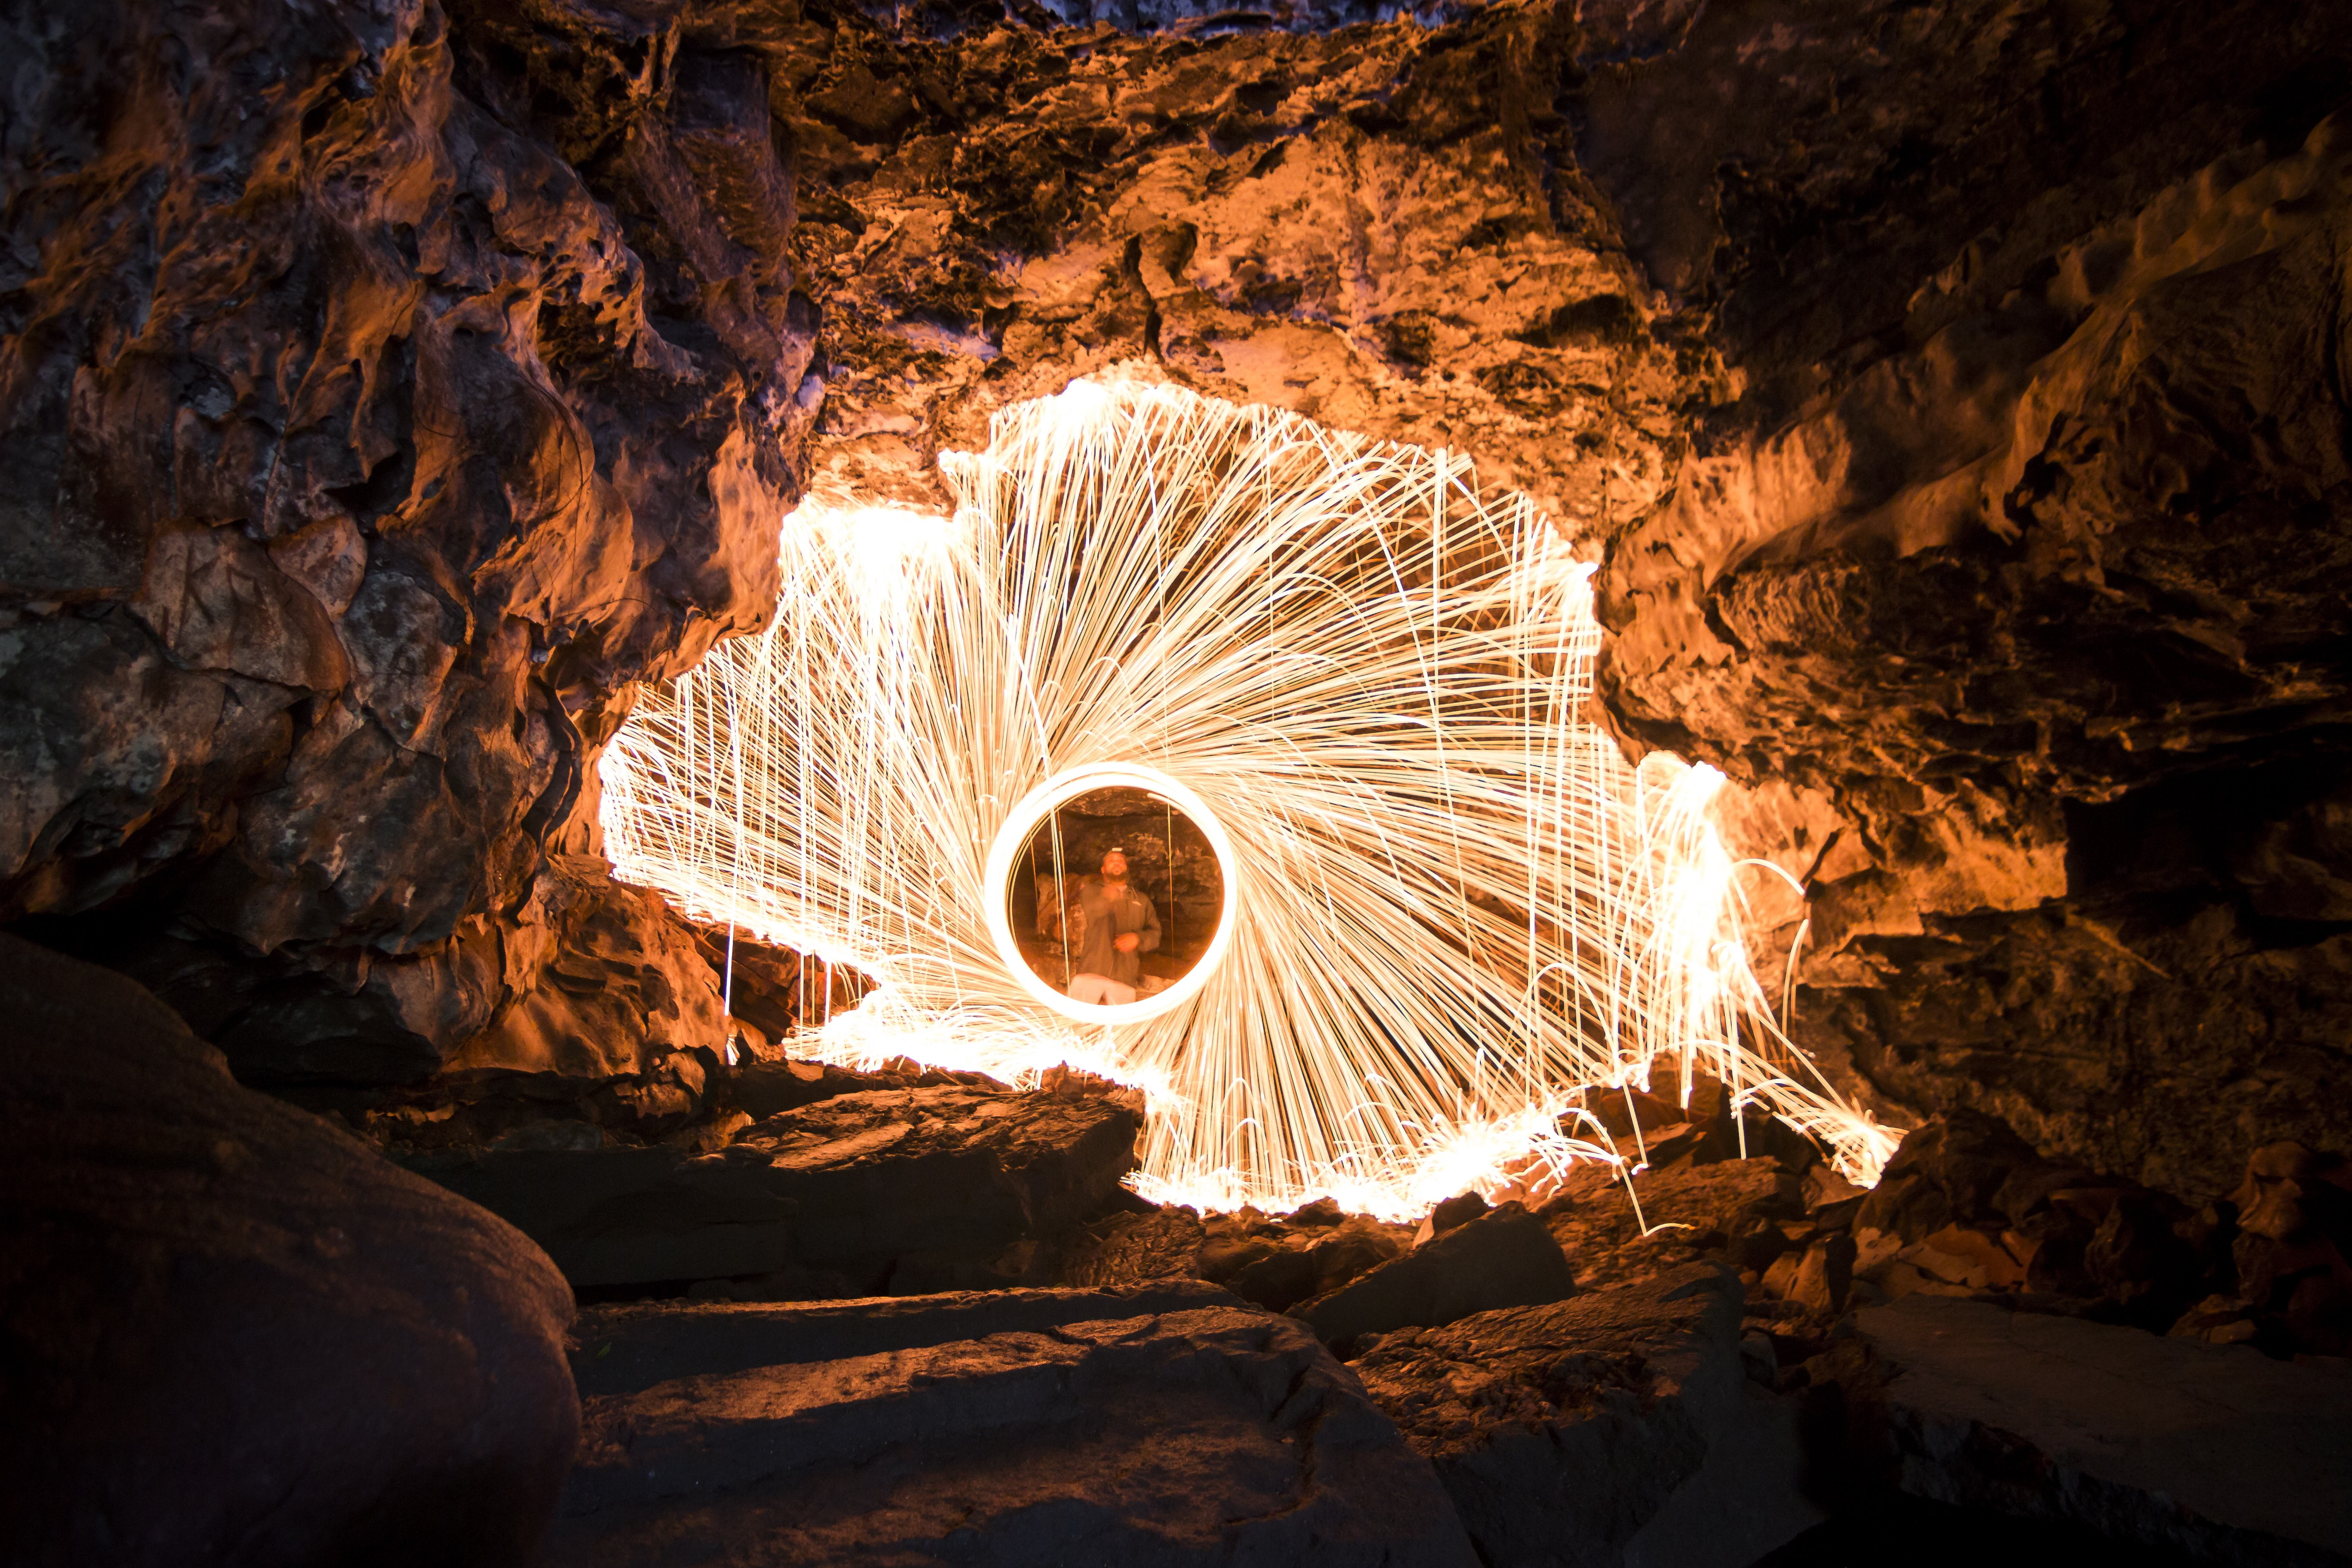 steel wool photography of fire dance